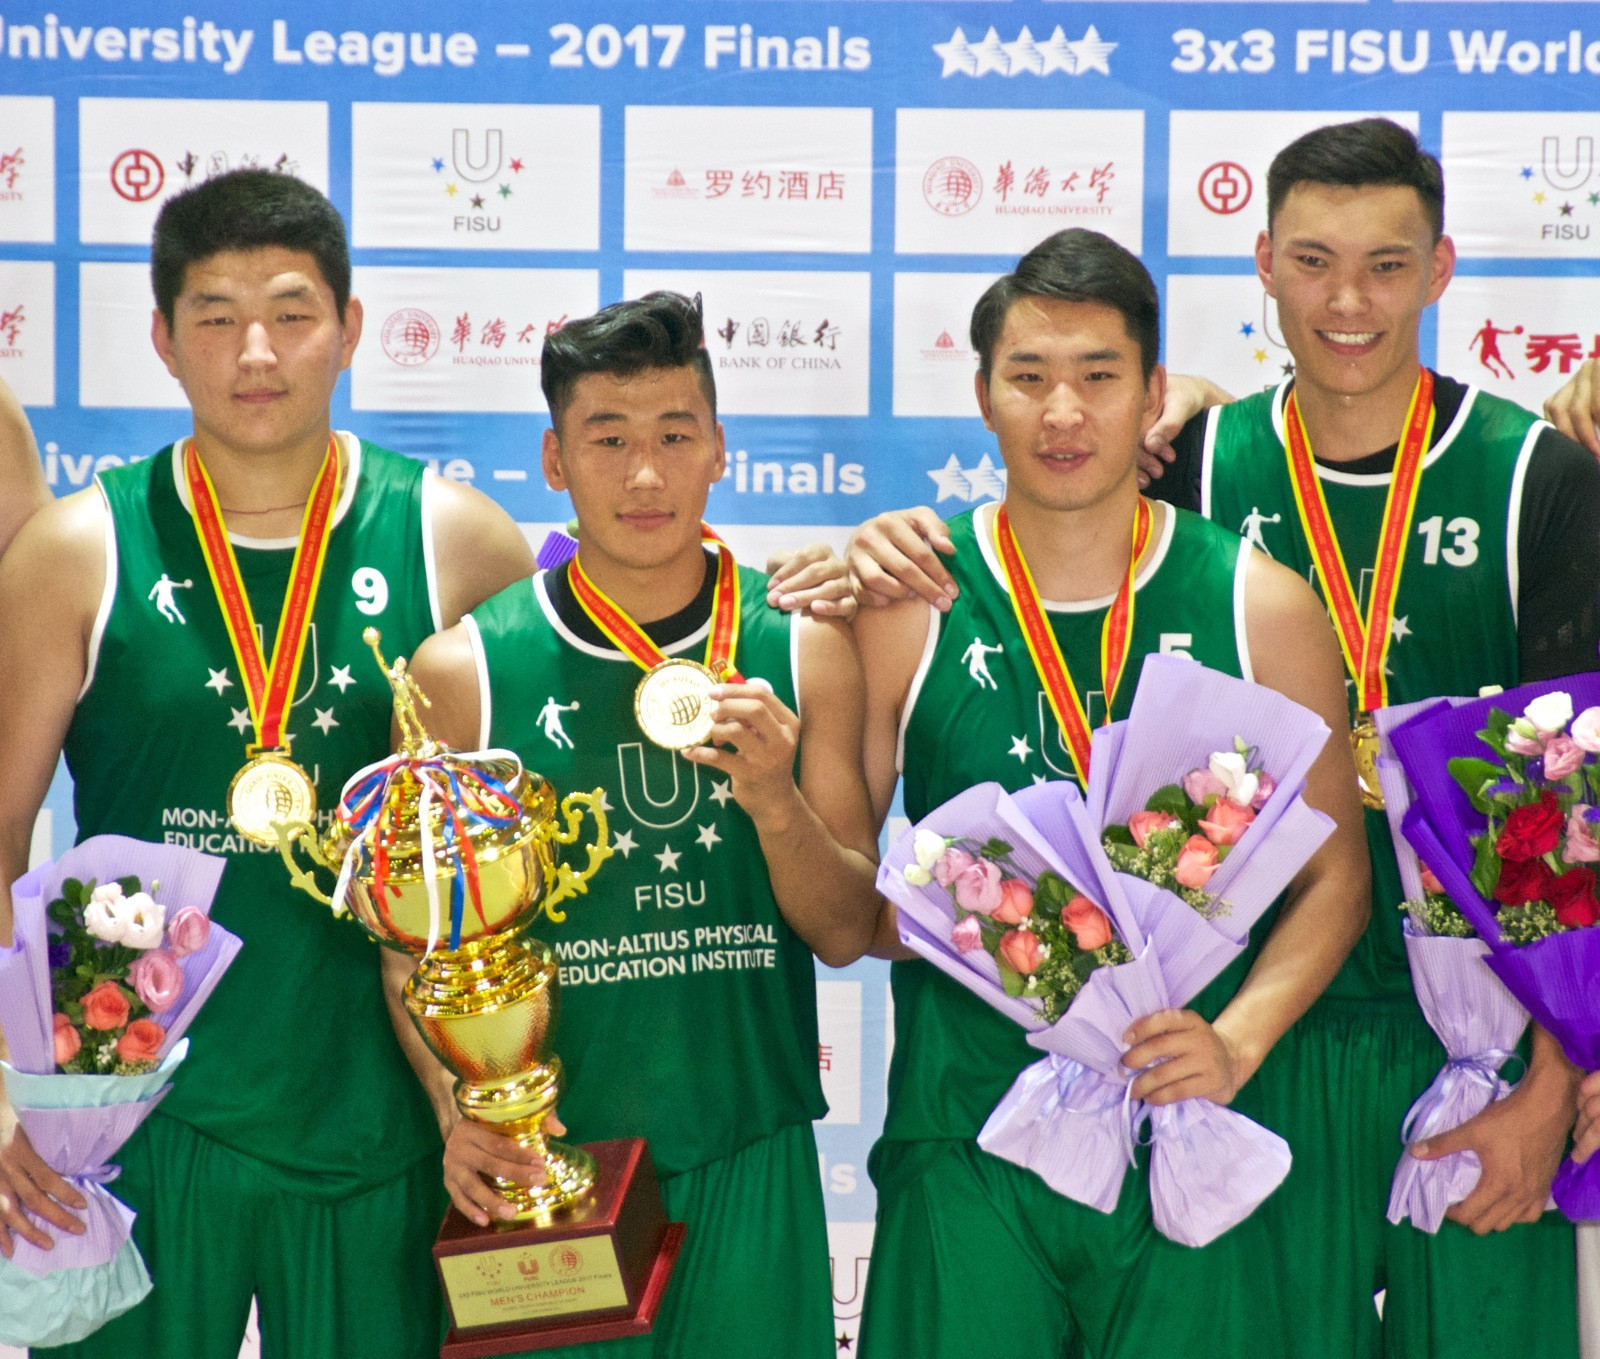 Mongolian and Chinese Taipei teams claim World 3x3 Basketball University League titles